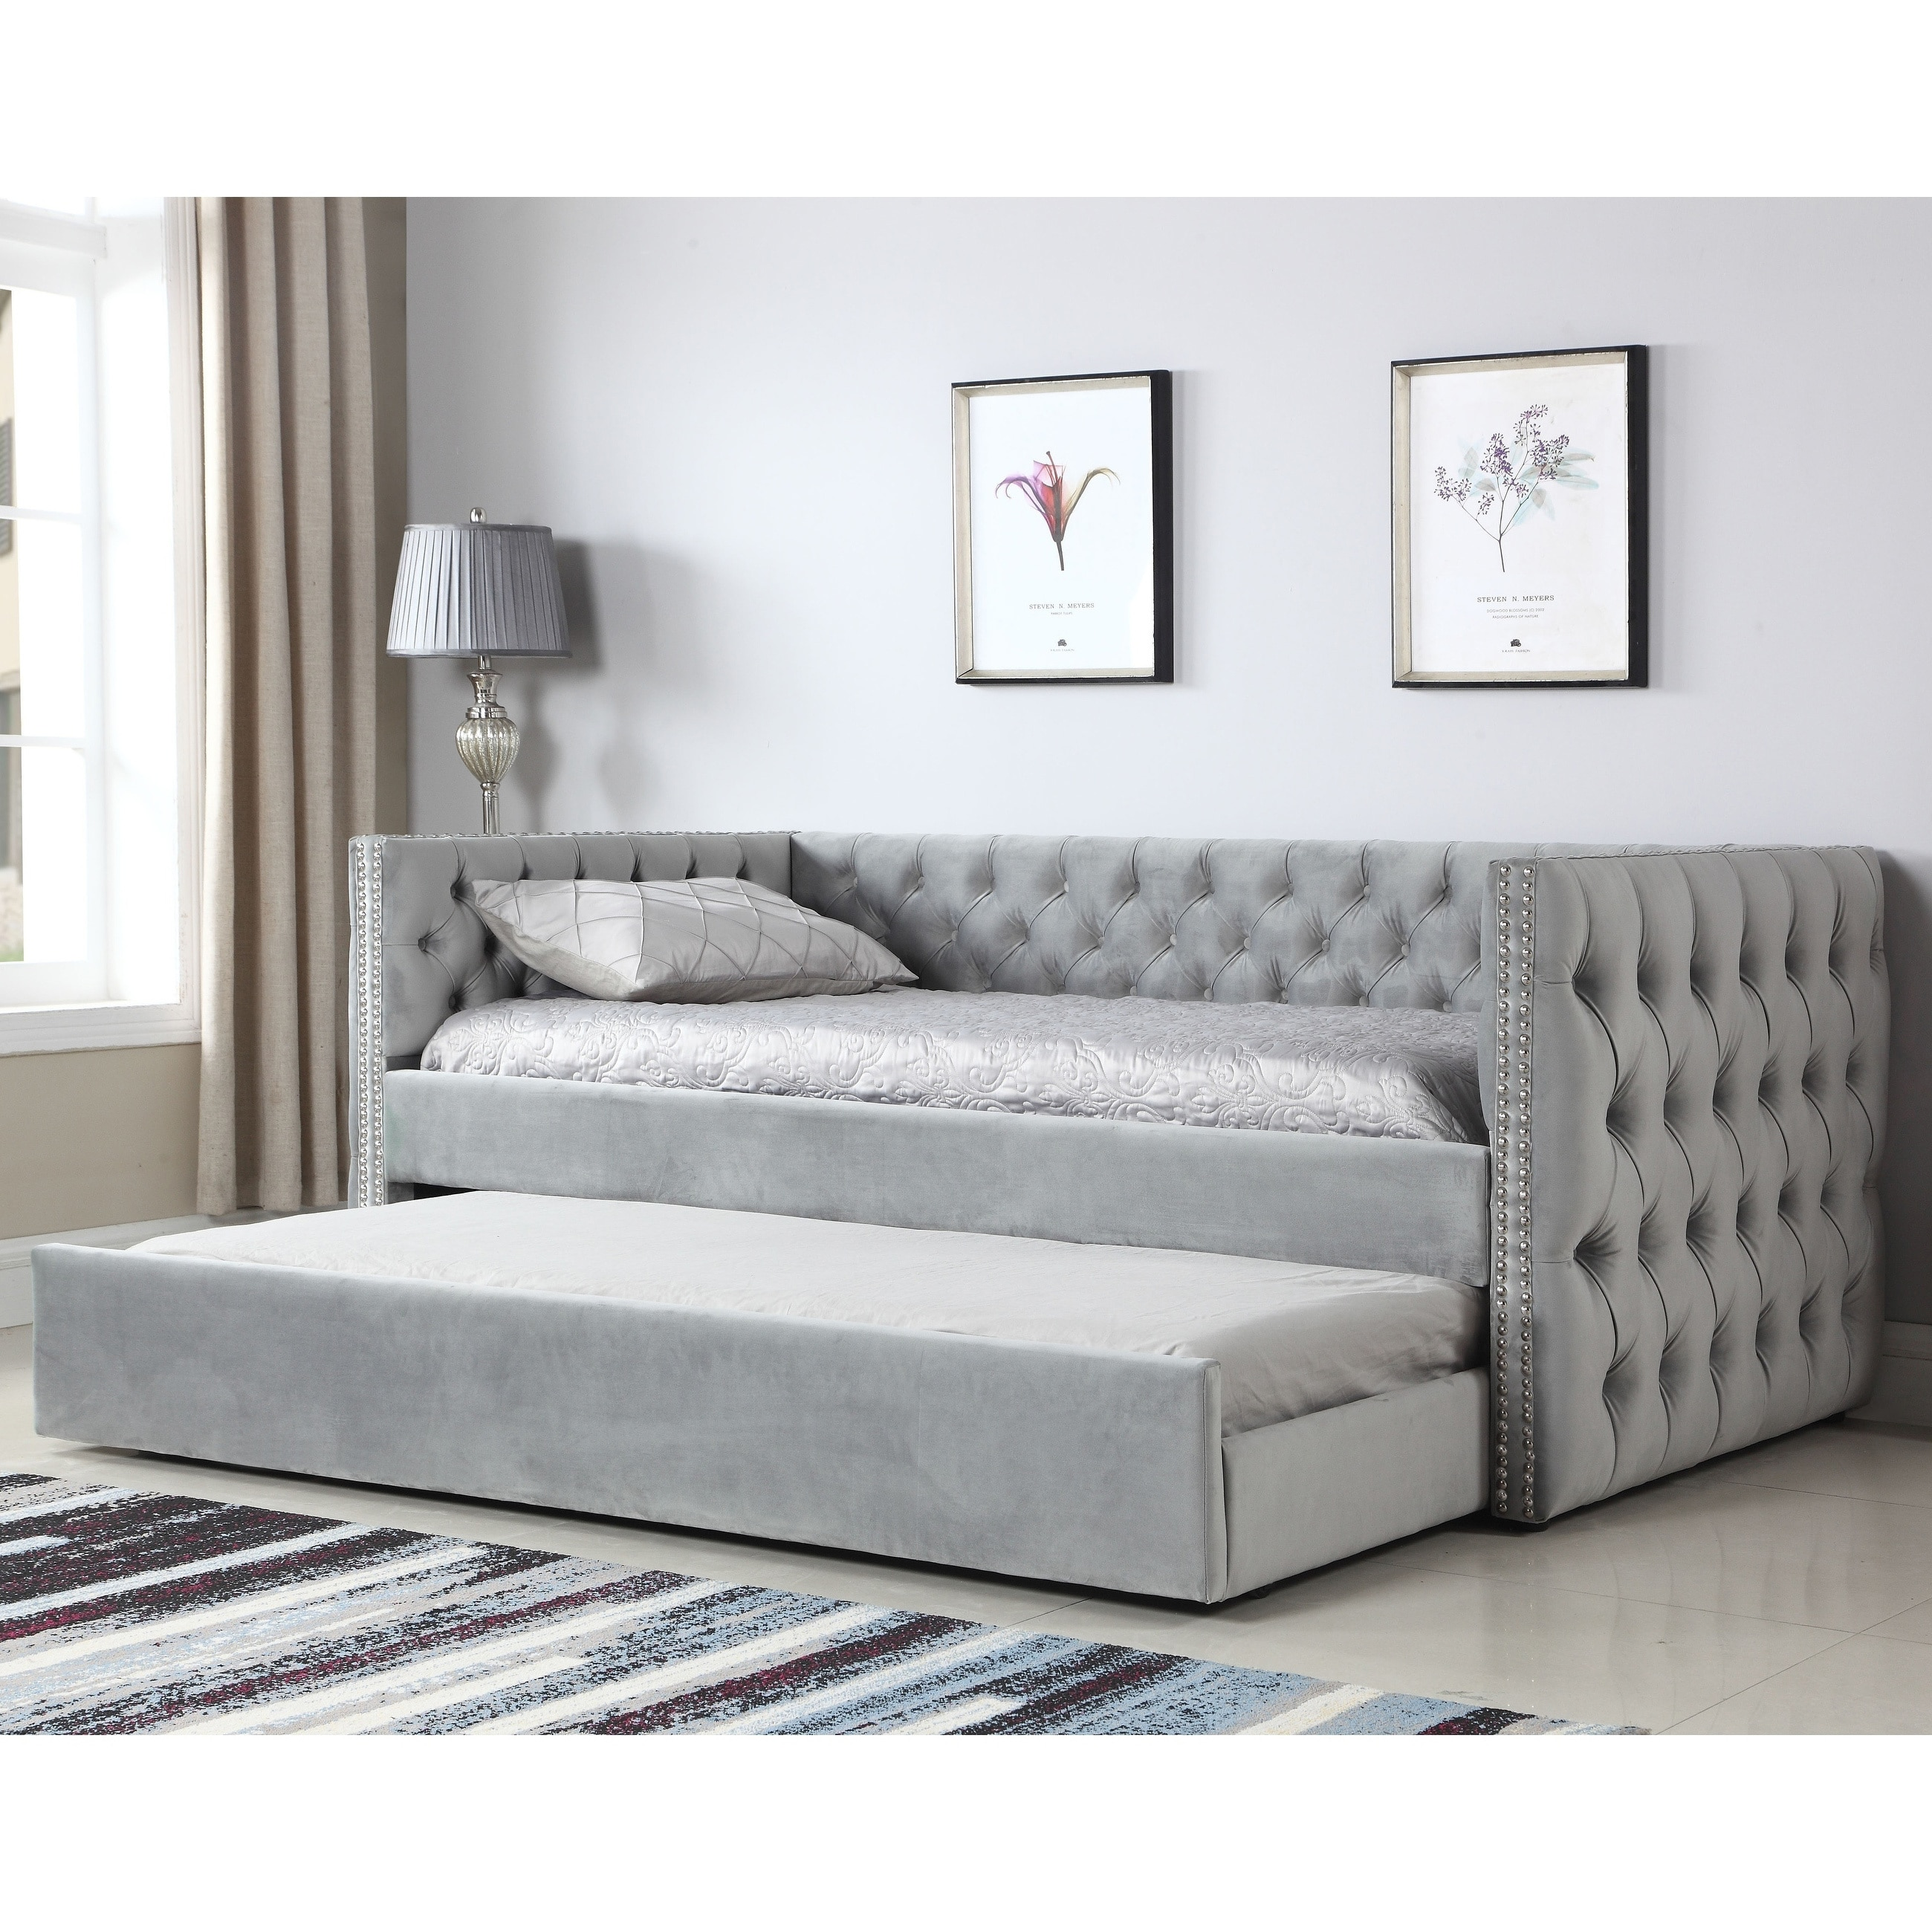 - Shop Gracewood Hollow Moyo Light Grey Tufted Upholstered Daybed W